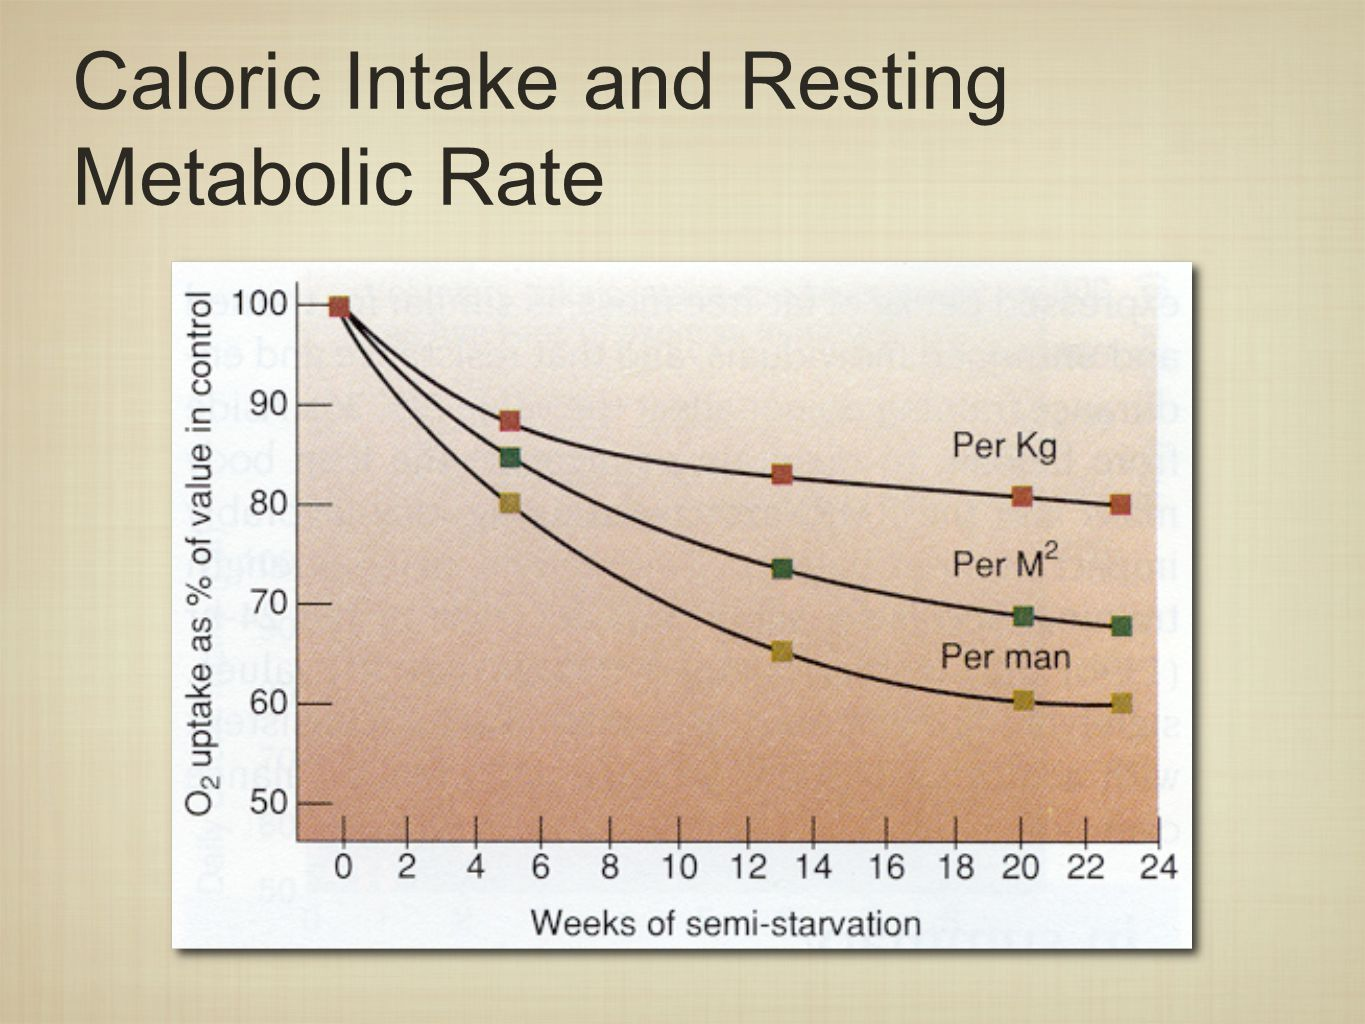 Caloric Intake and Resting Metabolic Rate